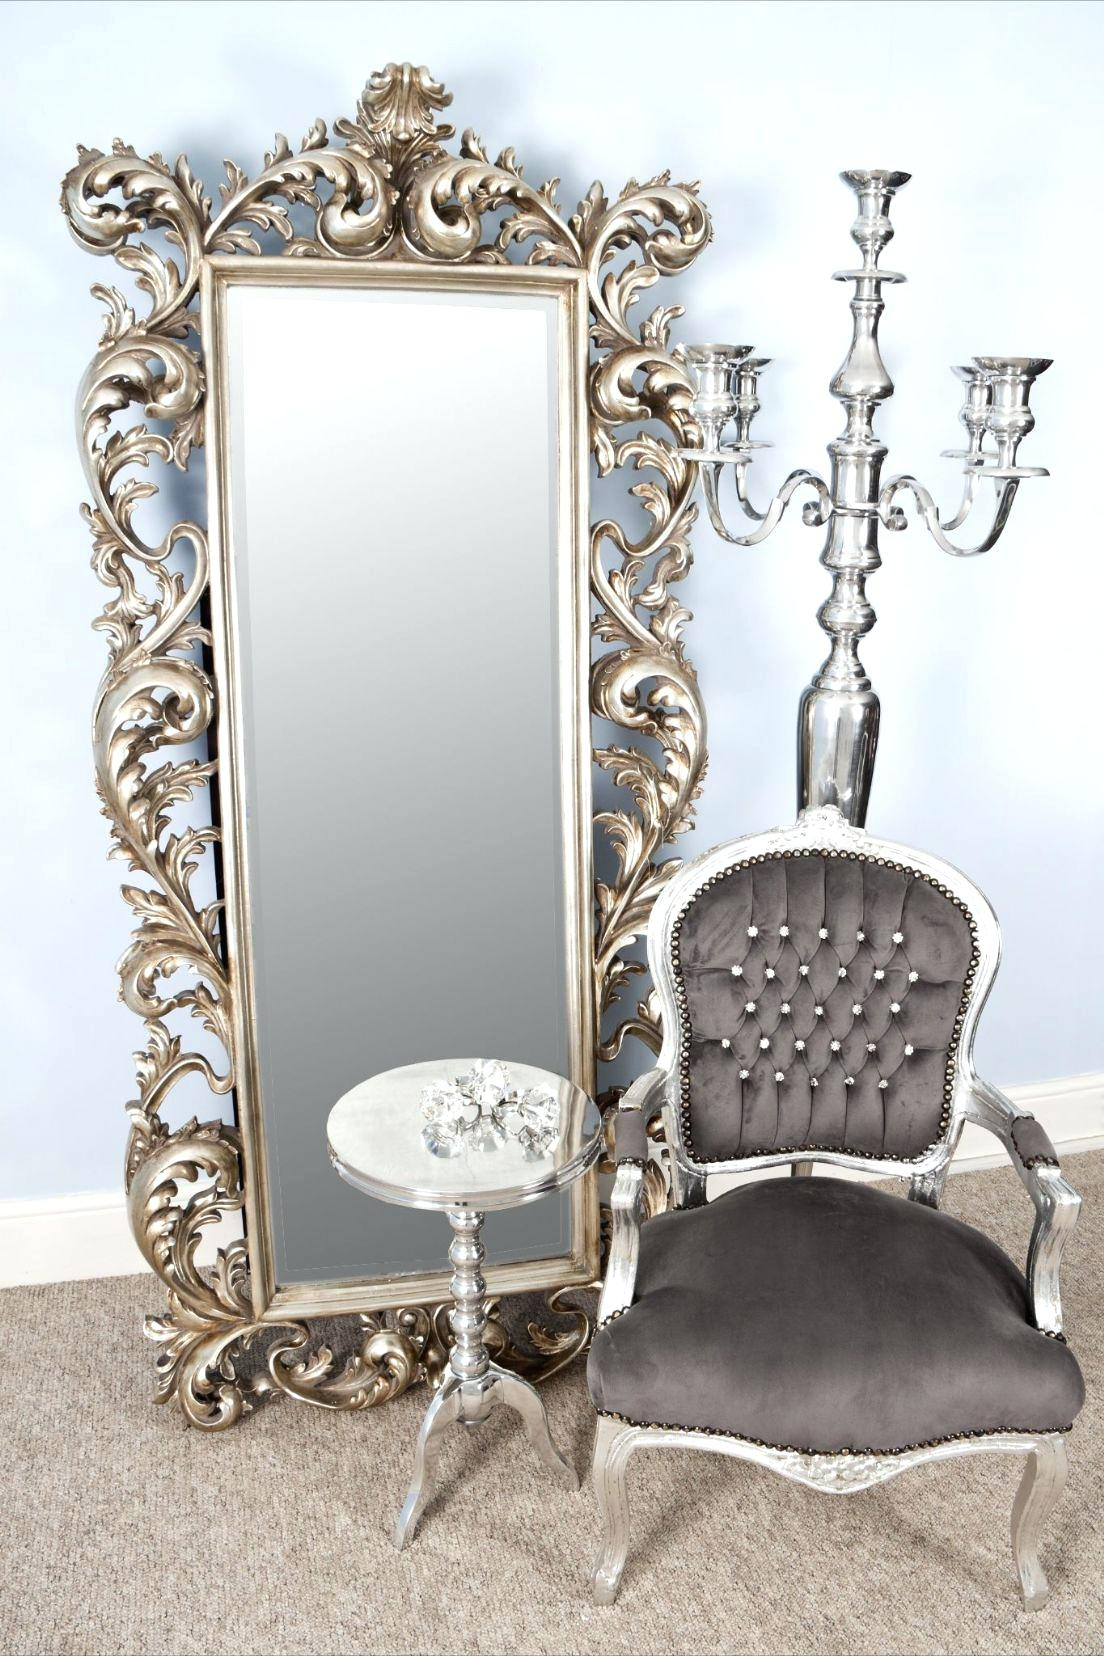 Antique Looking Mirror United Statesantique Style Mirrors With Regard To Vintage Looking Mirrors (View 7 of 15)